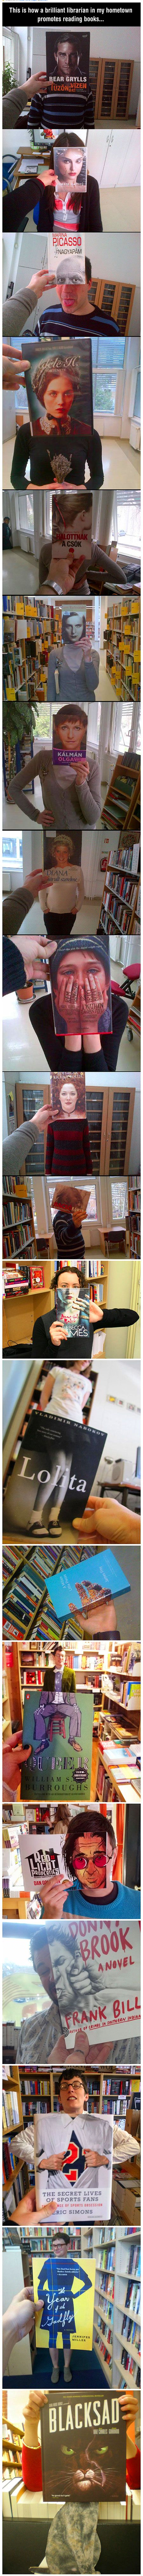 This is how one geeky librarian decided to get people to read.